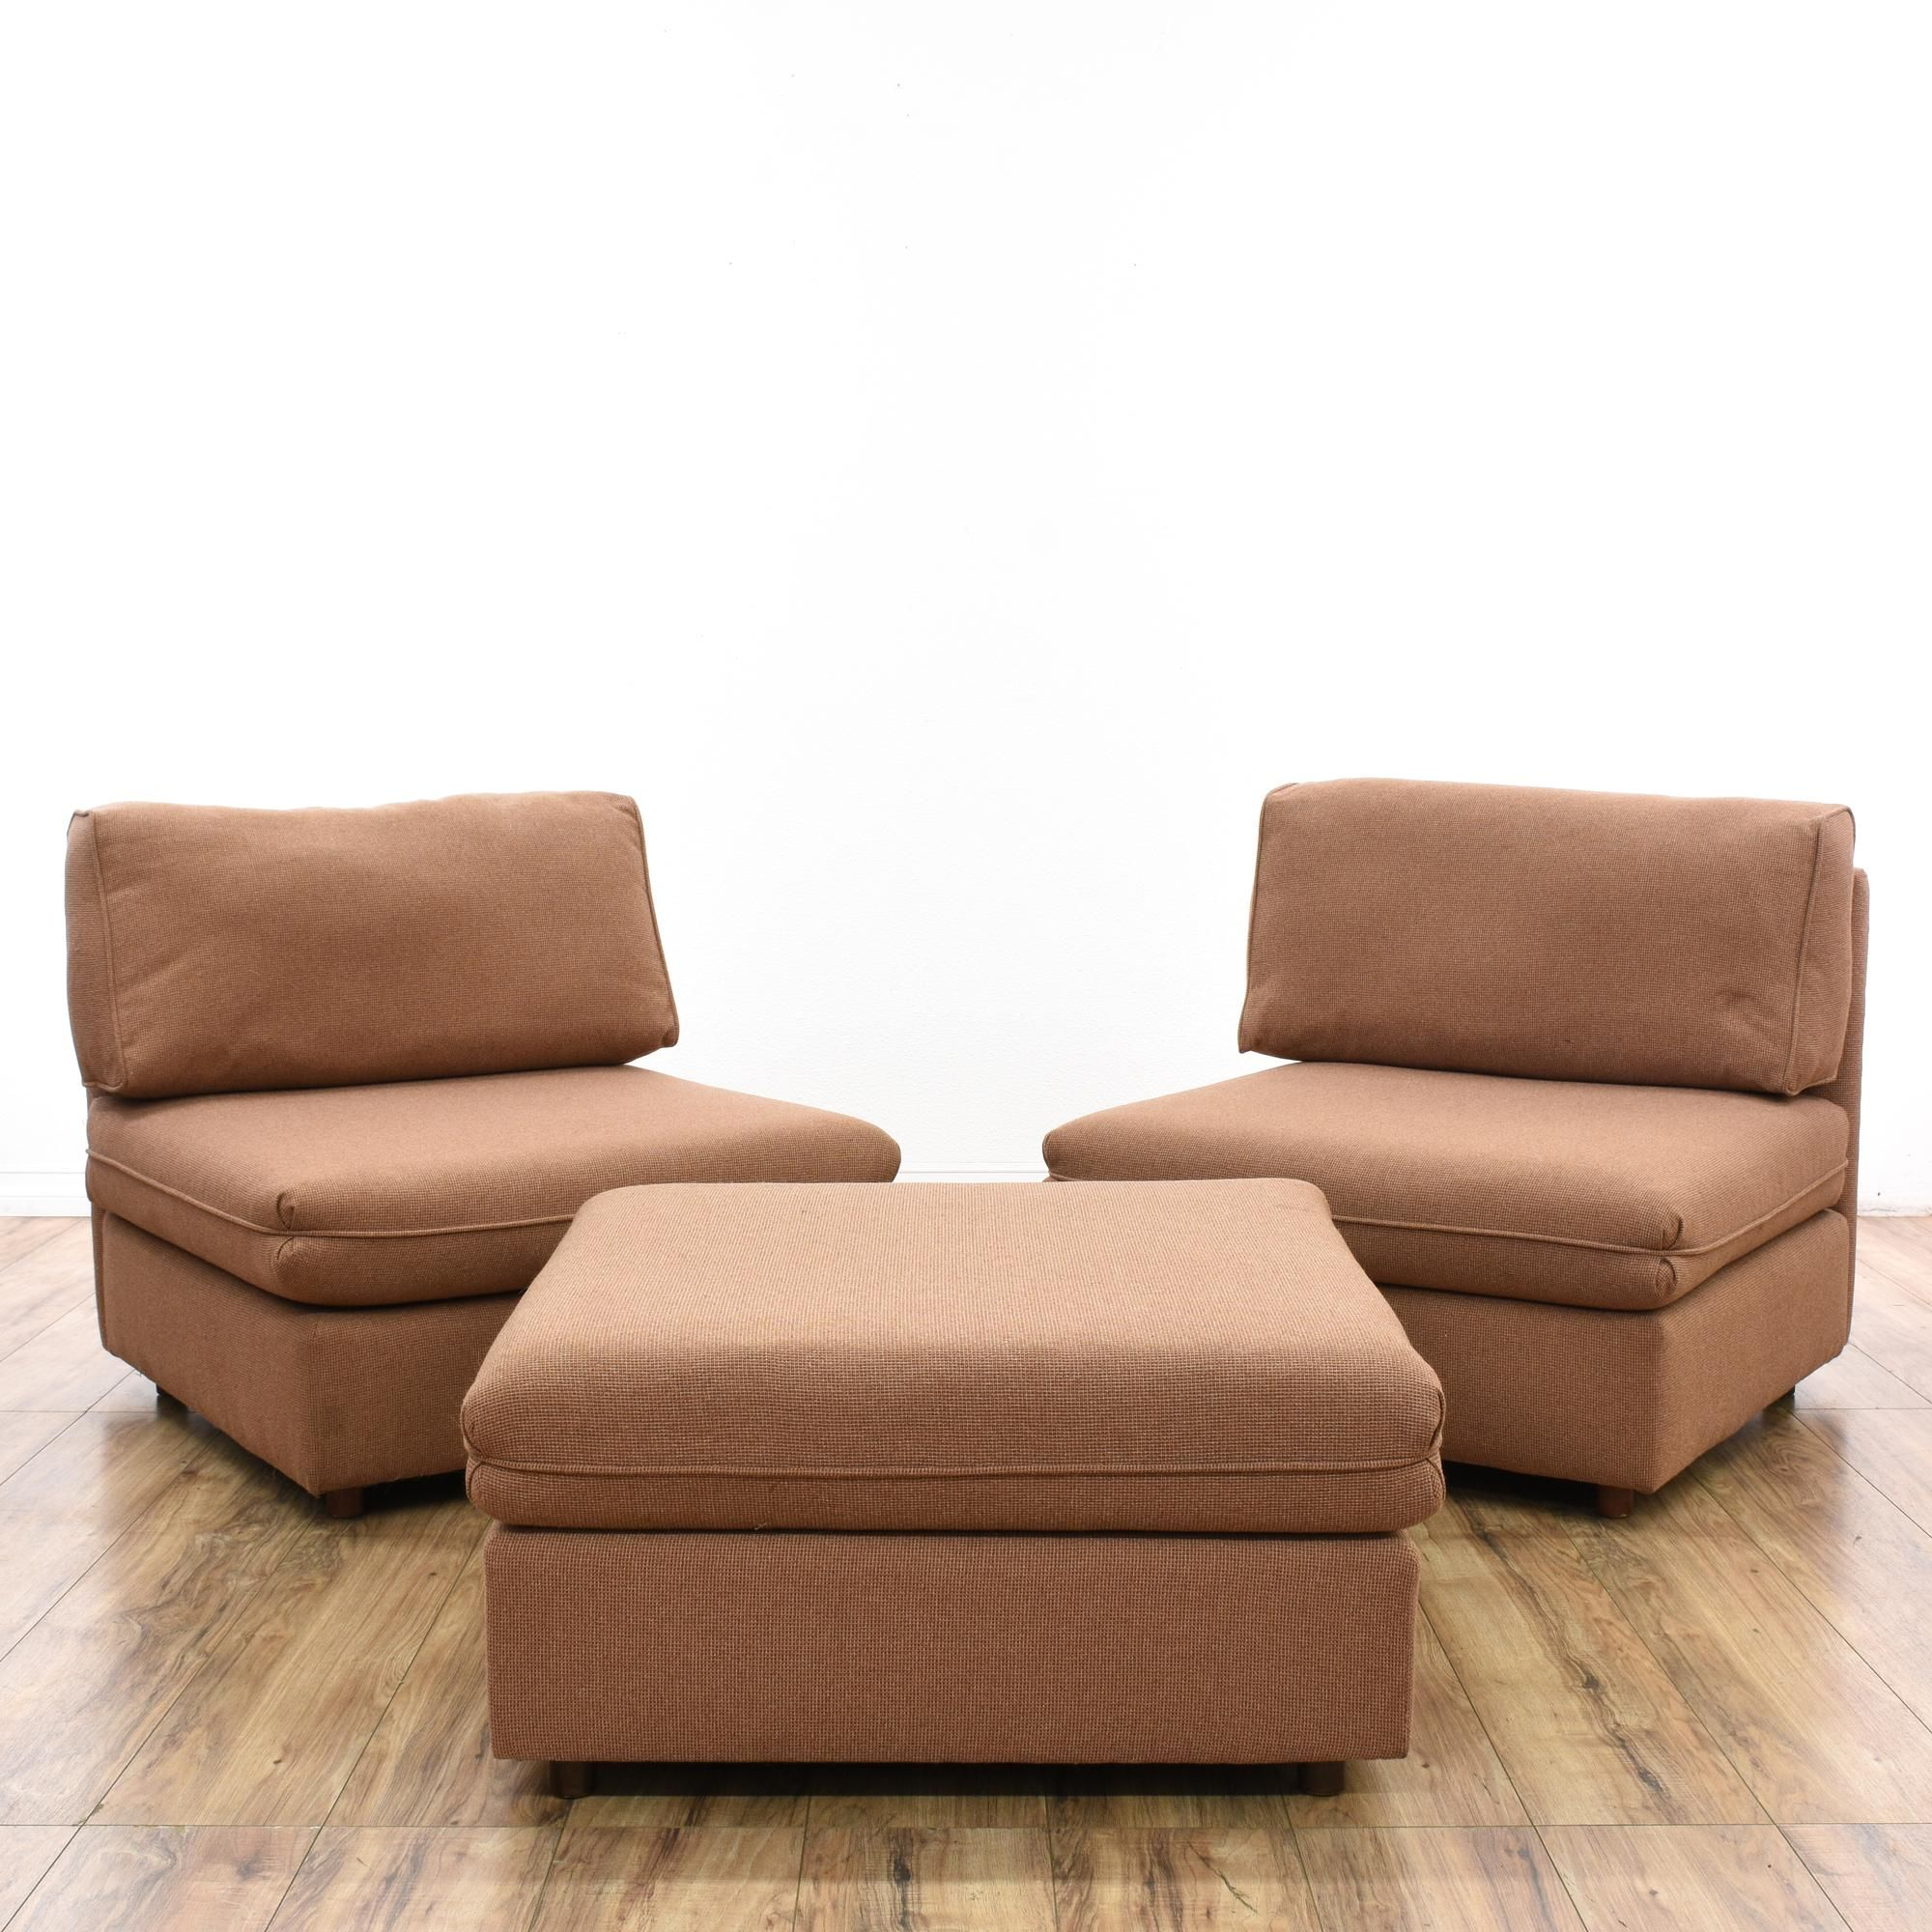 This pair of armless sofa chairs & ottoman are upholstered in a